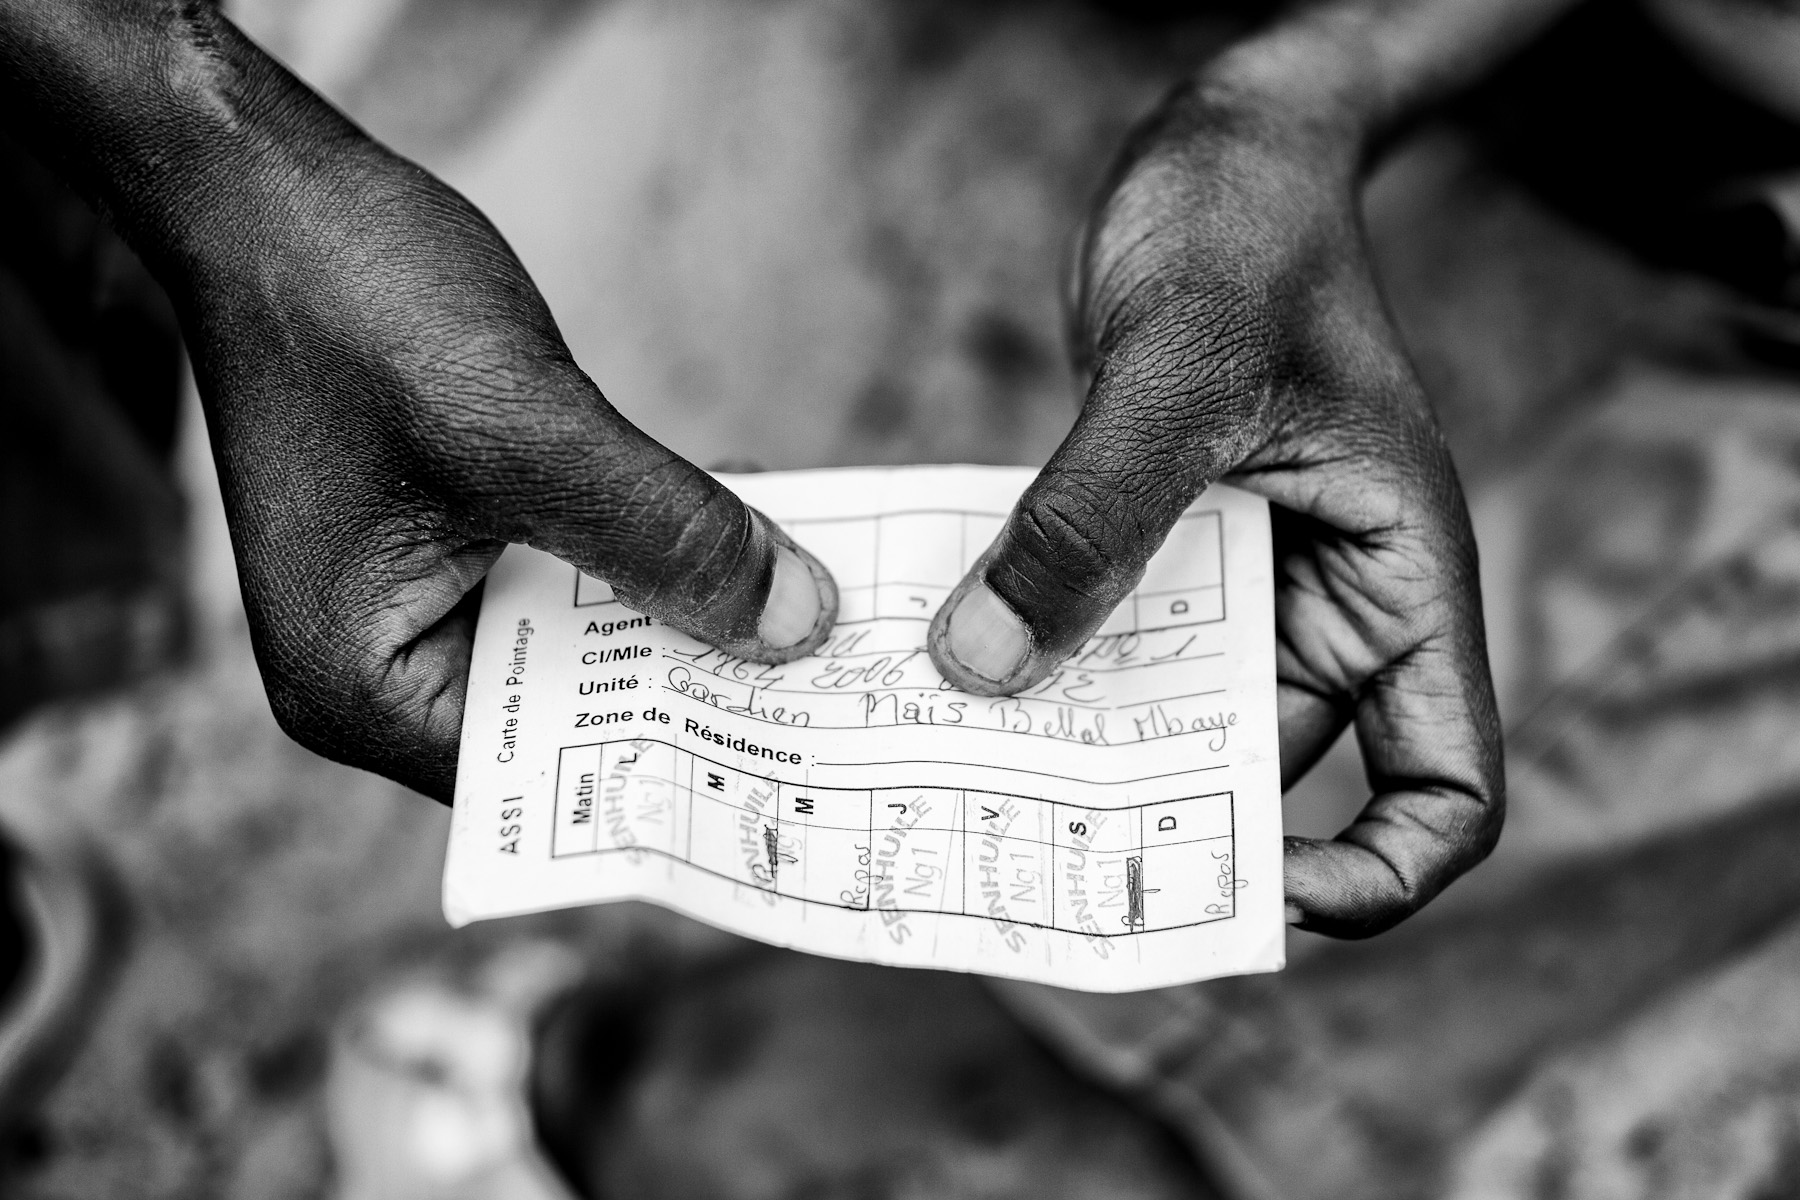 Employee in the Senhuile/Senethanol shows his presence checklist in one of the villages in the Ndiael region of Senegal, on January 8, 2014. The checklist serves as the basis on which the company pays him for his work. Out of 4500 jobs that were promised by the company, Senhuile/Senethanol is currently employing around 200 people, 20 of them are women. The man is employed as a guard, receiving payment of 3000 Senegalese francs /4,5 Eur/ for a  day and 4000 Francs /6 Eur/ for a night shift. He does not have an official employment contract with the company; the company also does not pay social security or insurance for him. The payment is not regular and is often lower than promised.